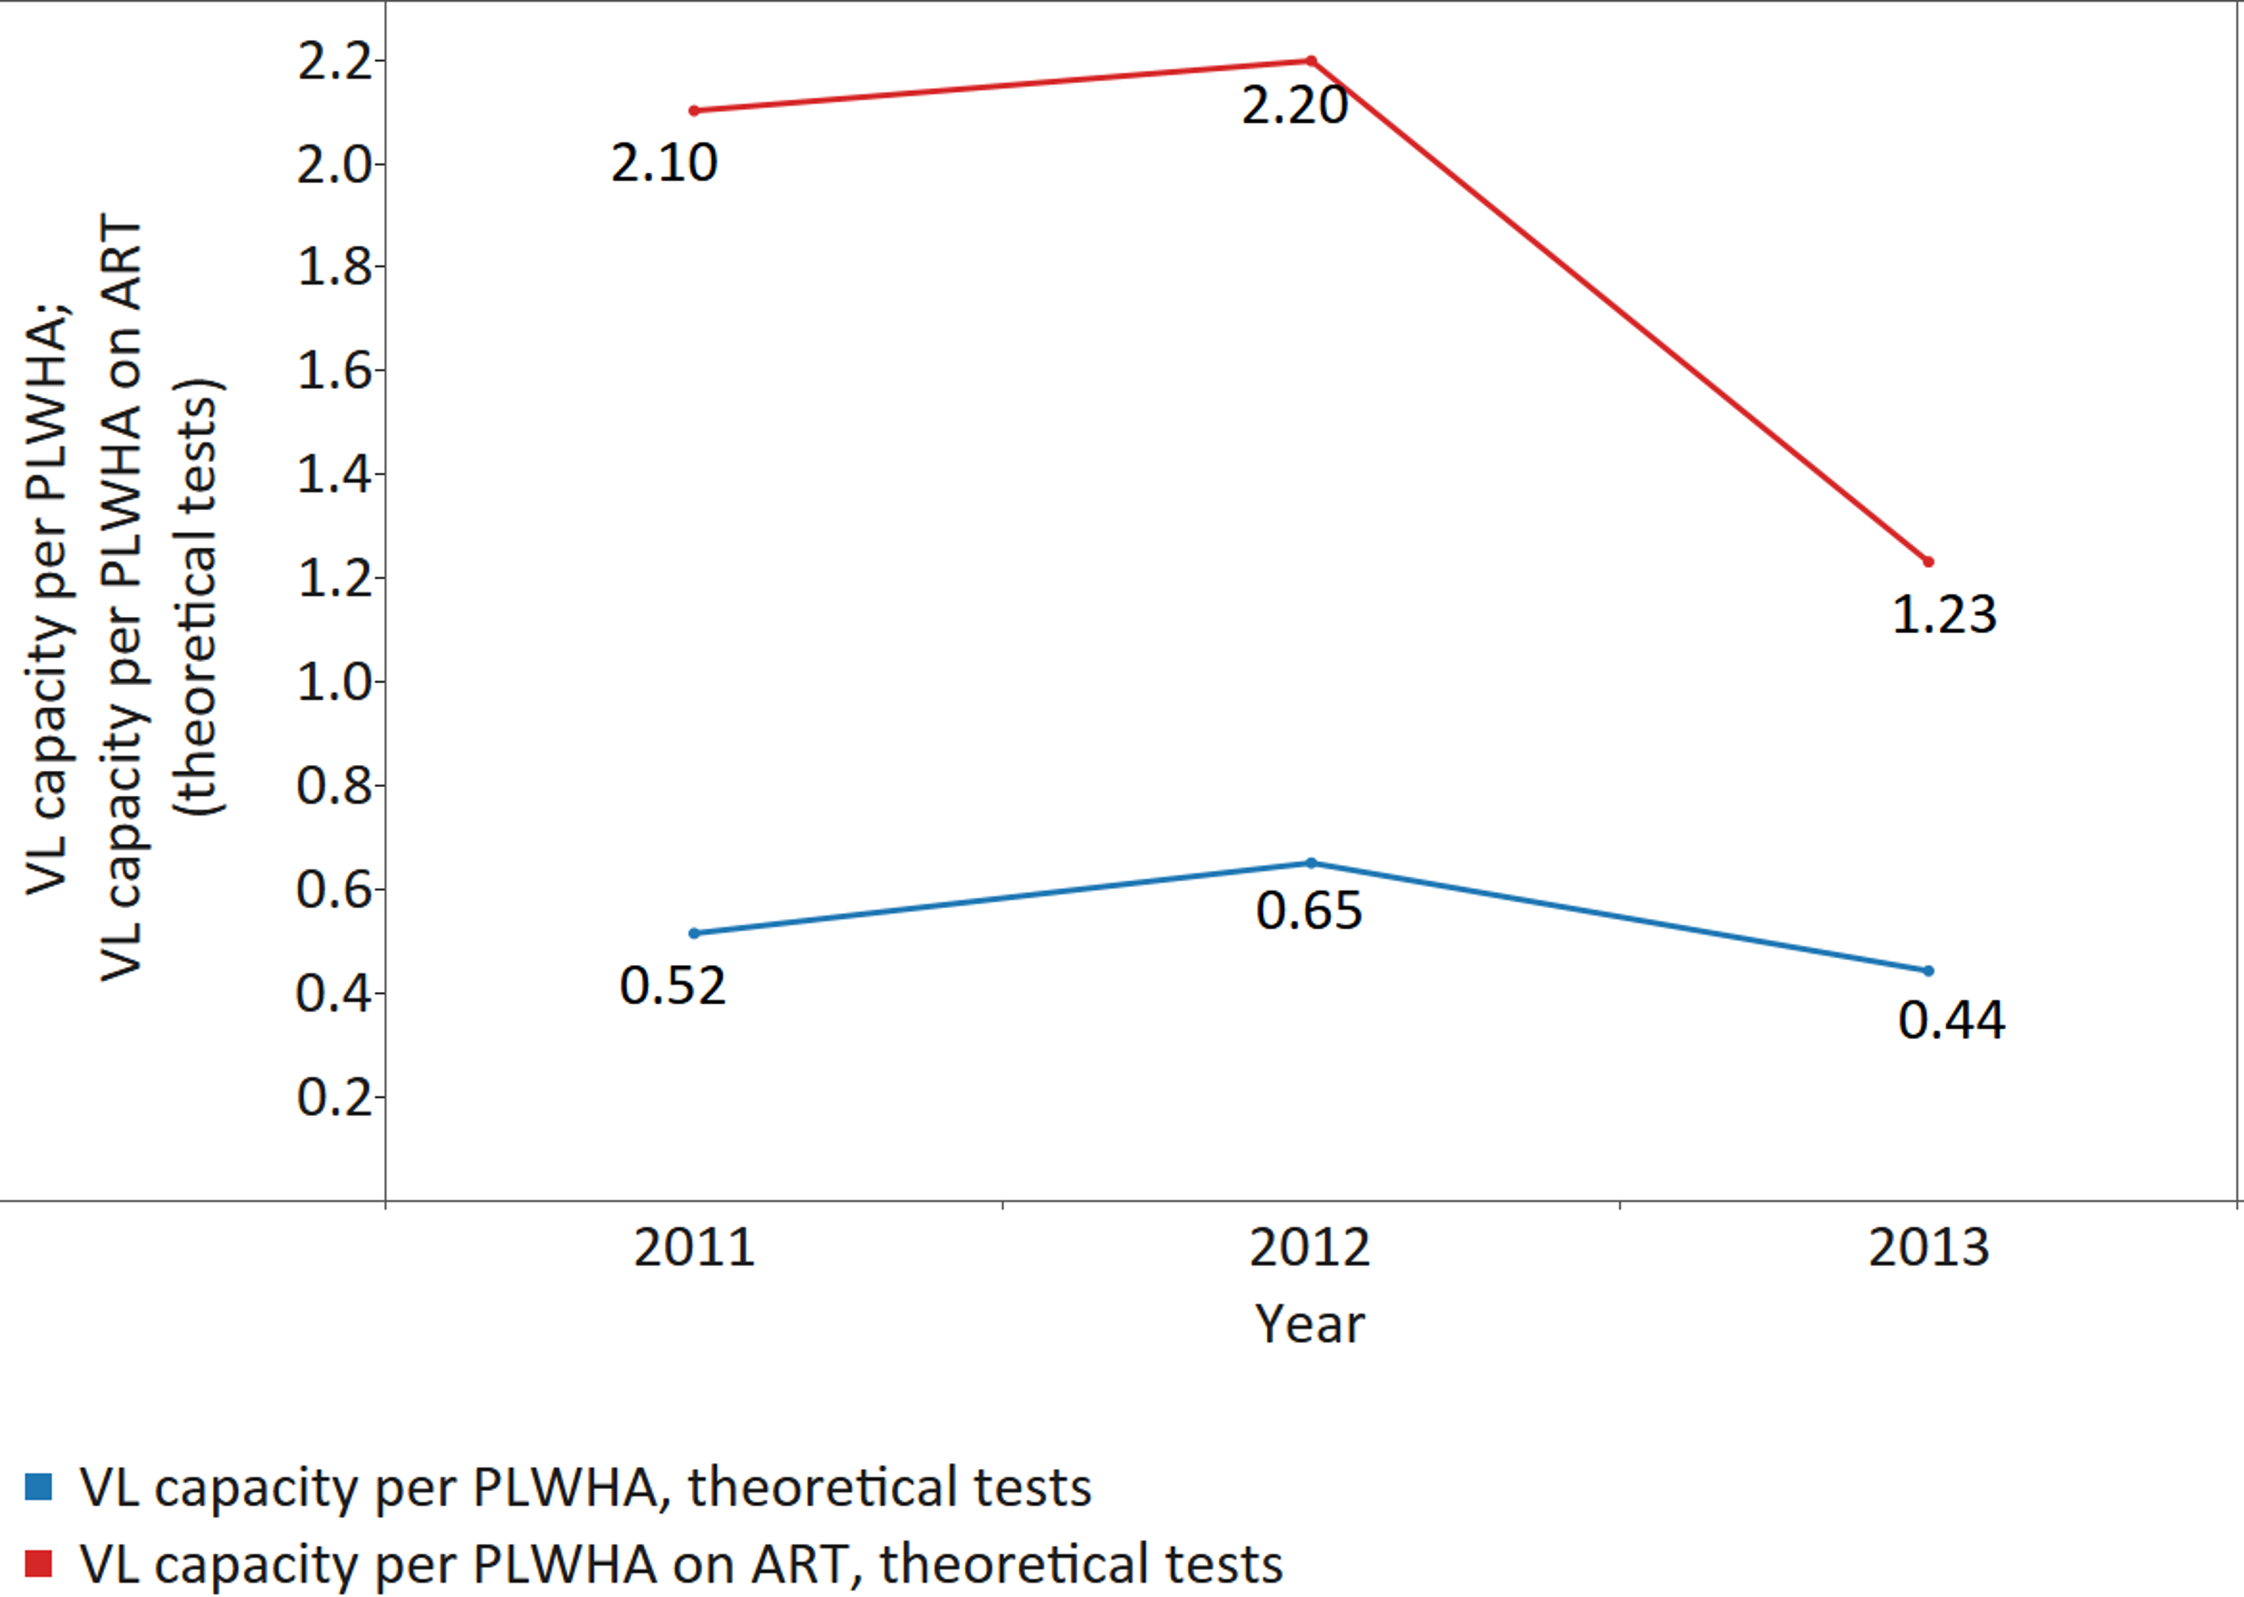 Theoretical viral load (VL) capacity per patient on ART and per PLWHA.